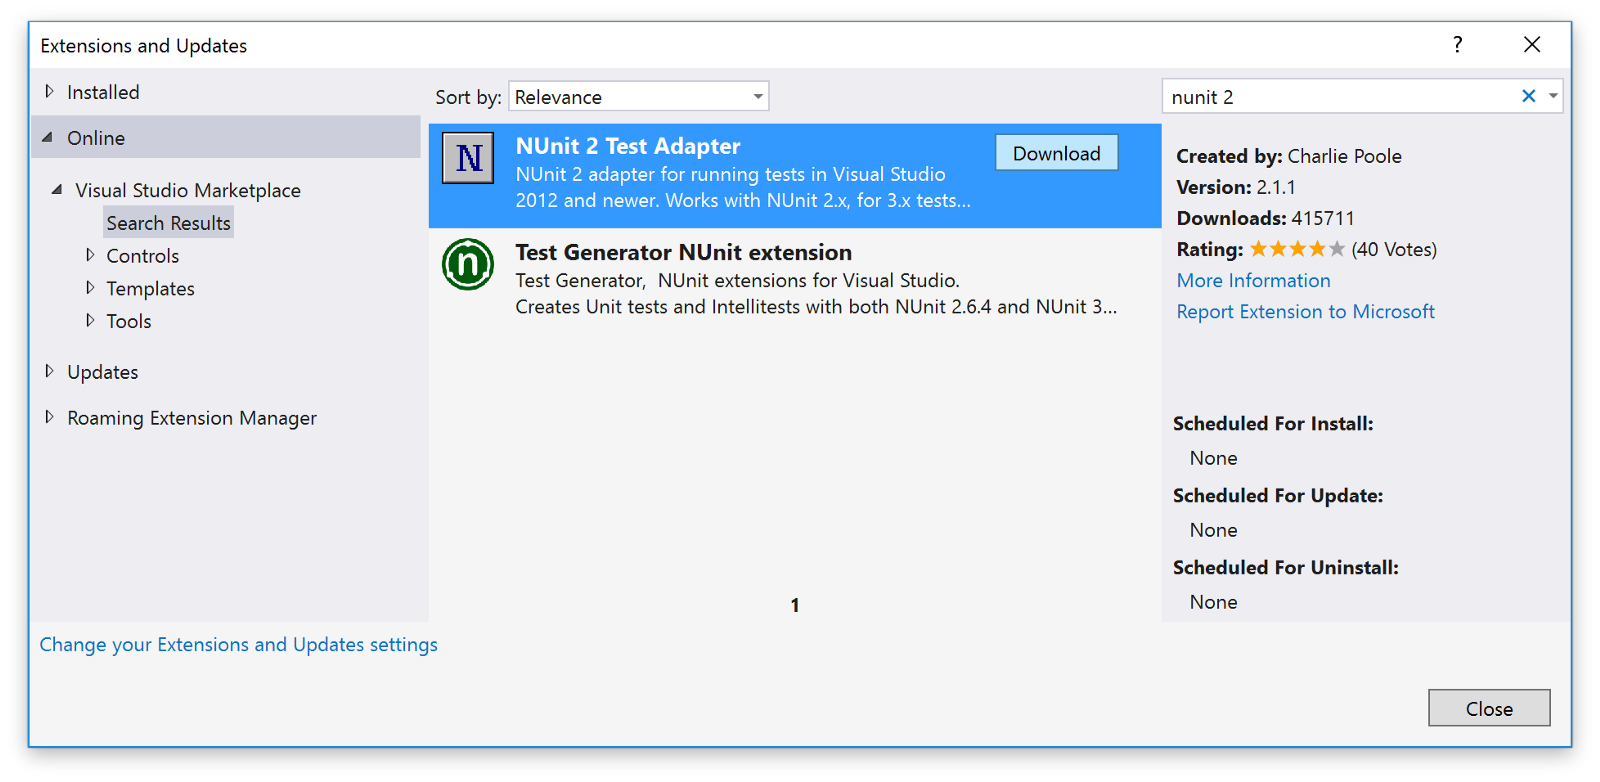 Installing the NUnit 2 test adapter